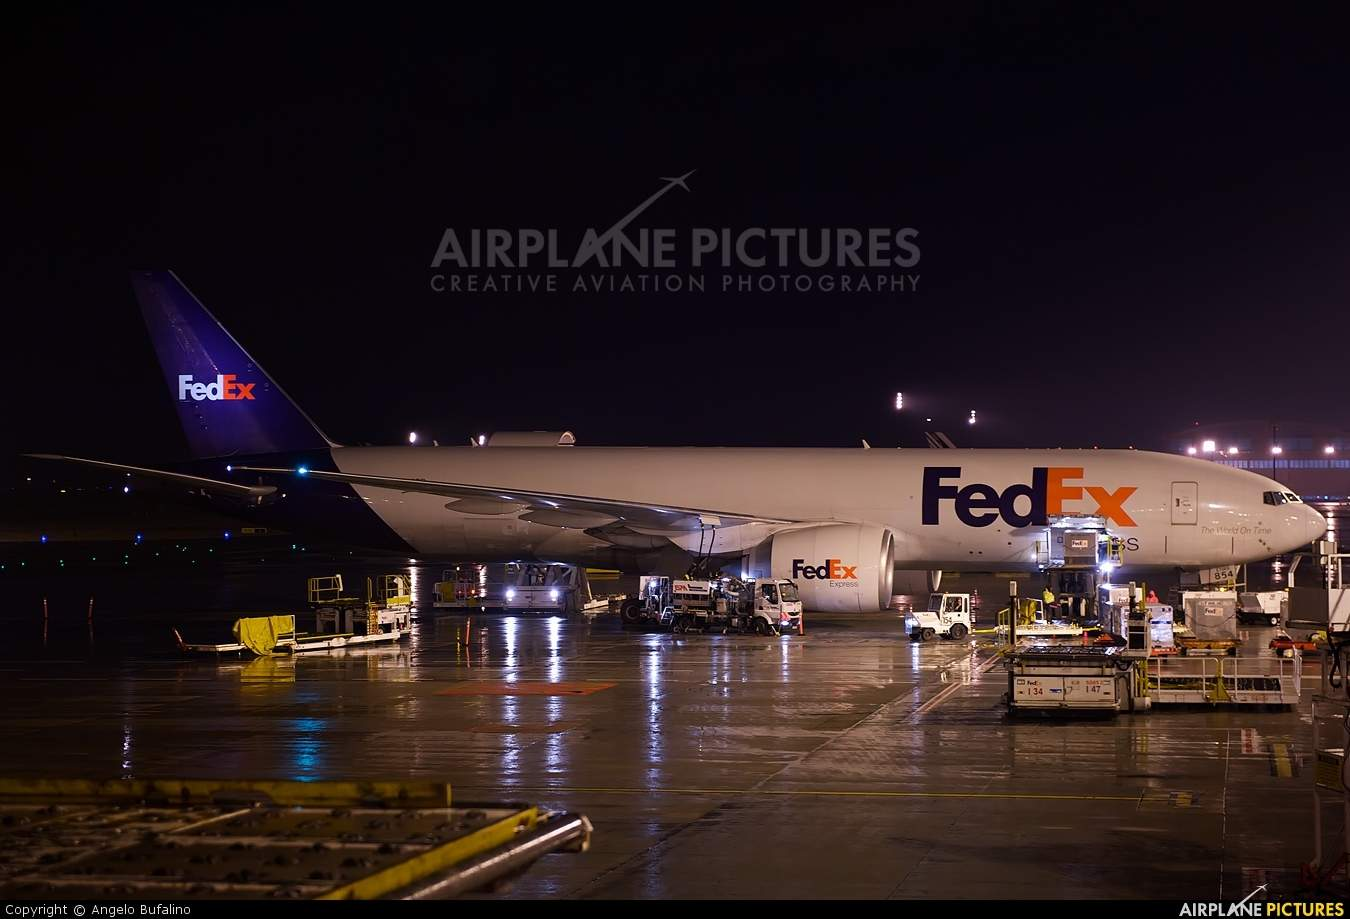 FedEx under attack by the US Government